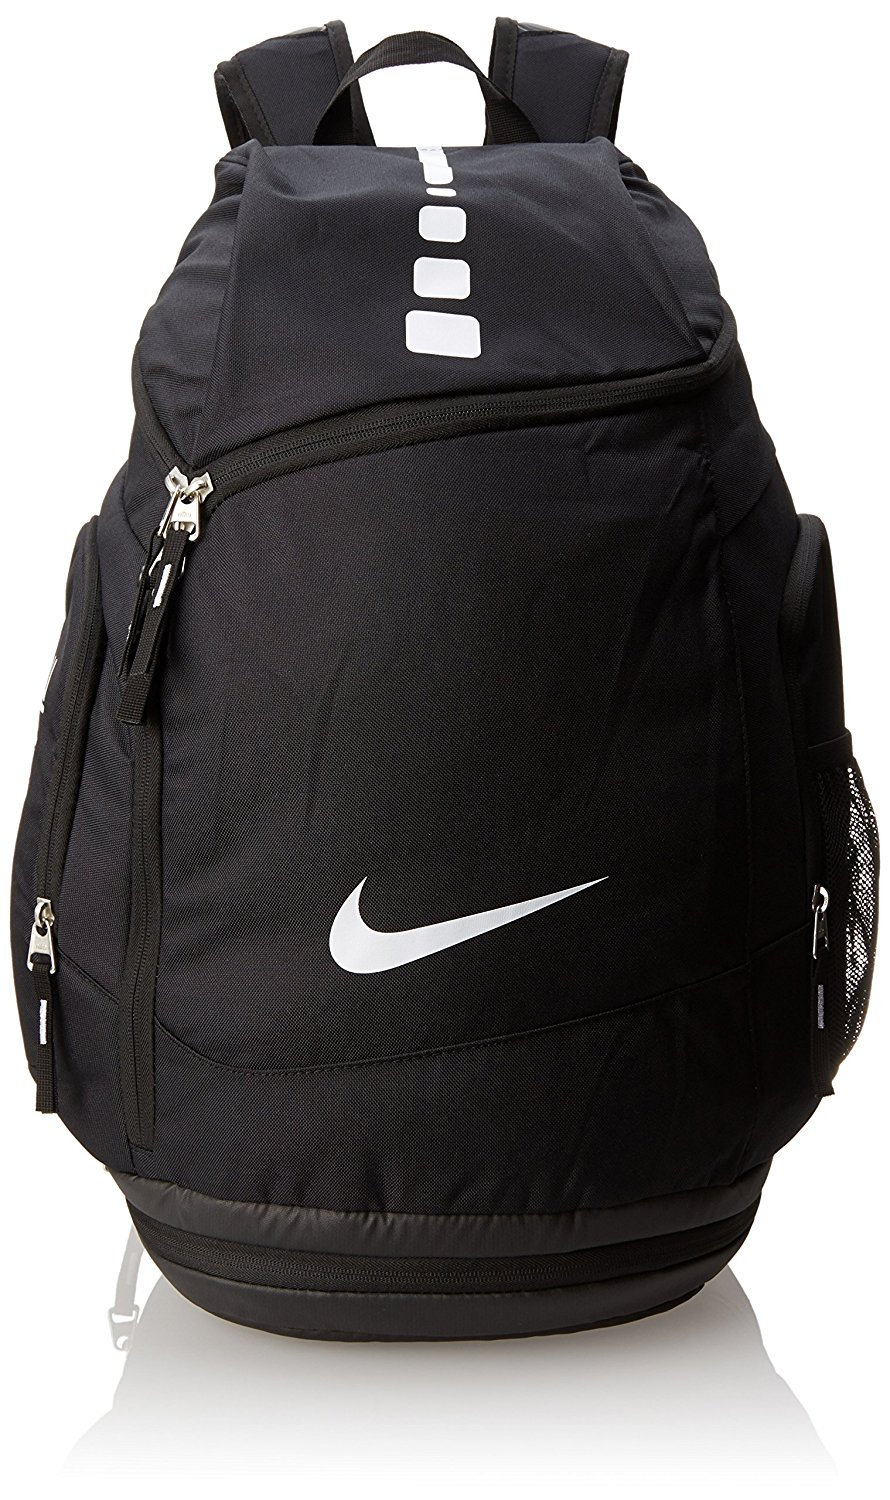 17614b68a9c Top 10 best basketball backpacks of 2019 – Expert Product Reviewer